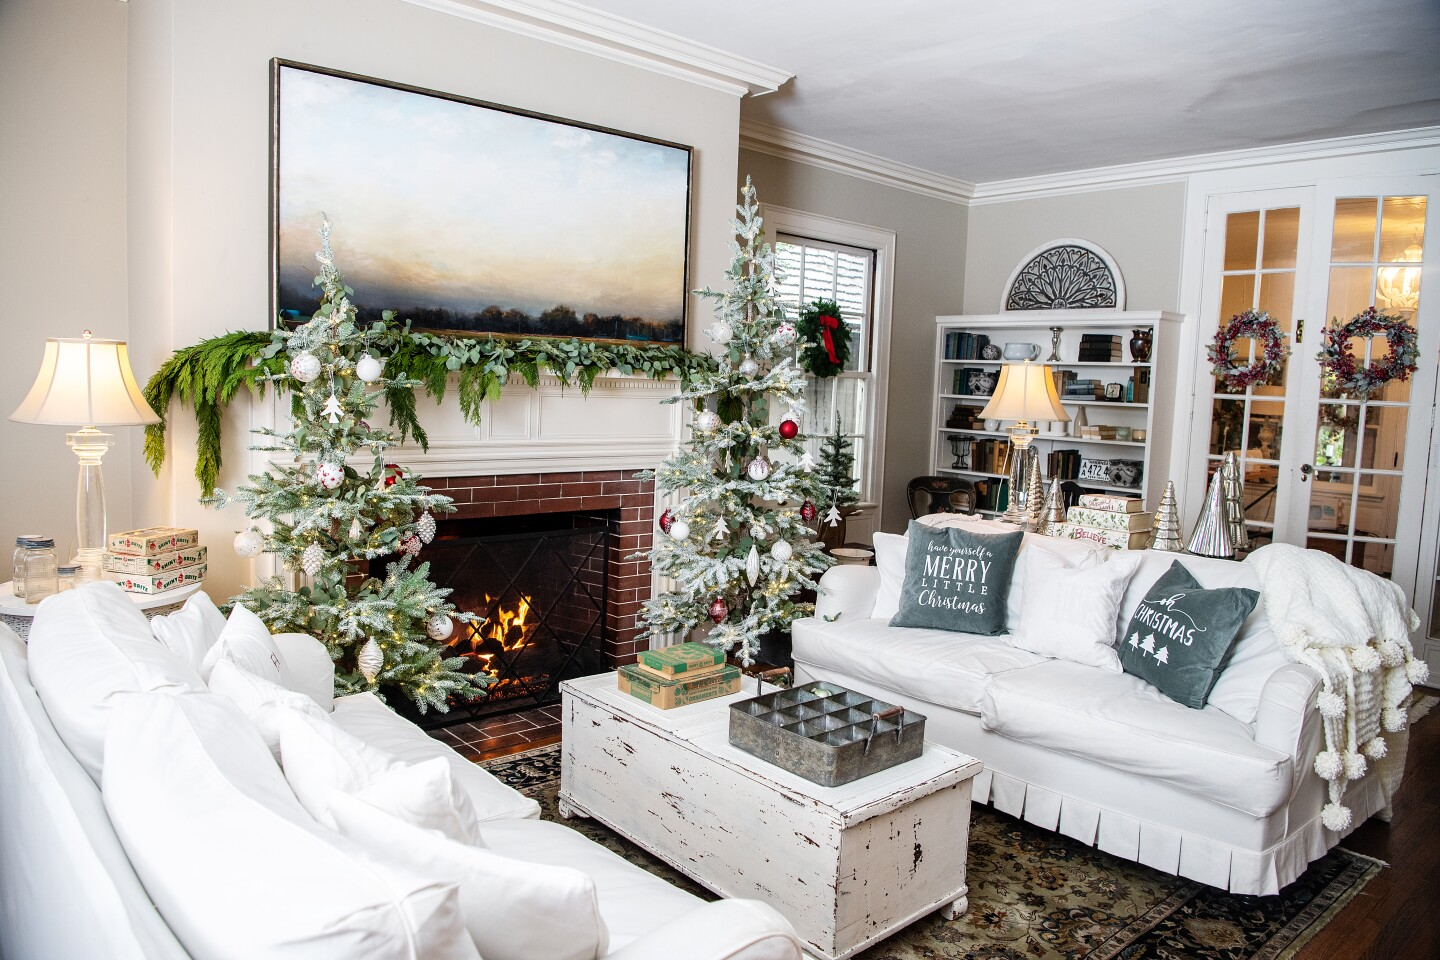 Home for the holidays with Leslie Saeta of My 100 Year Old Home